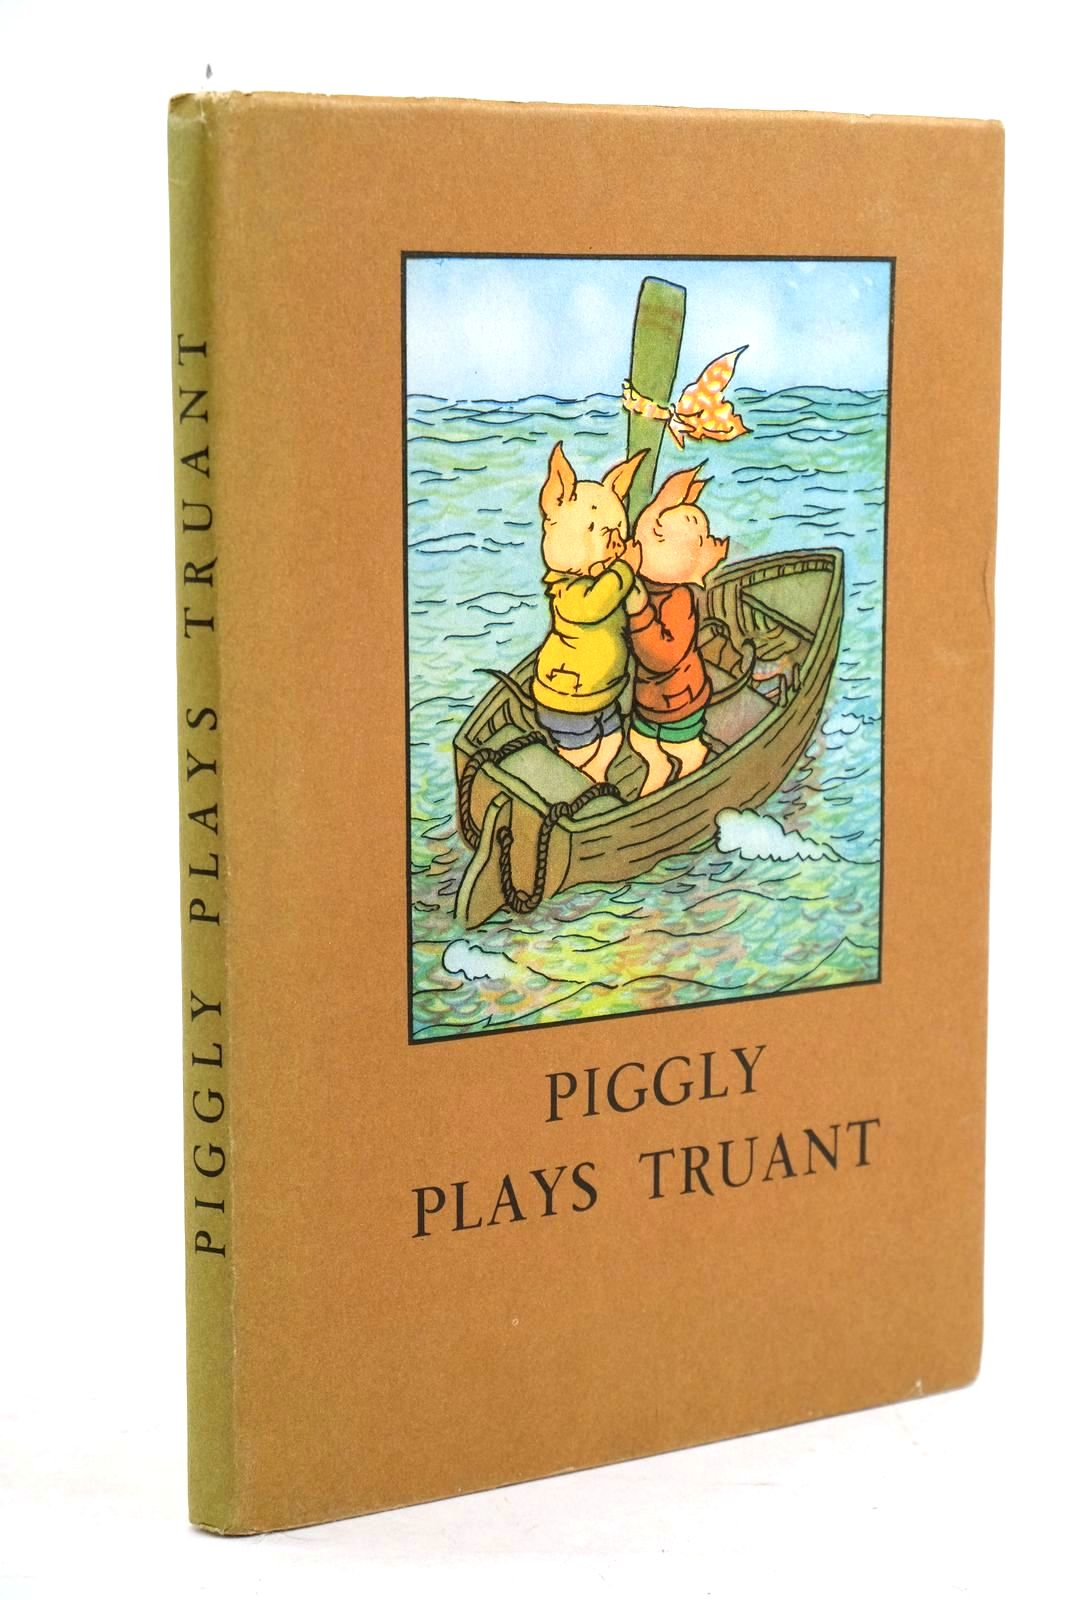 Photo of PIGGLY PLAYS TRUANT- Stock Number: 1321013